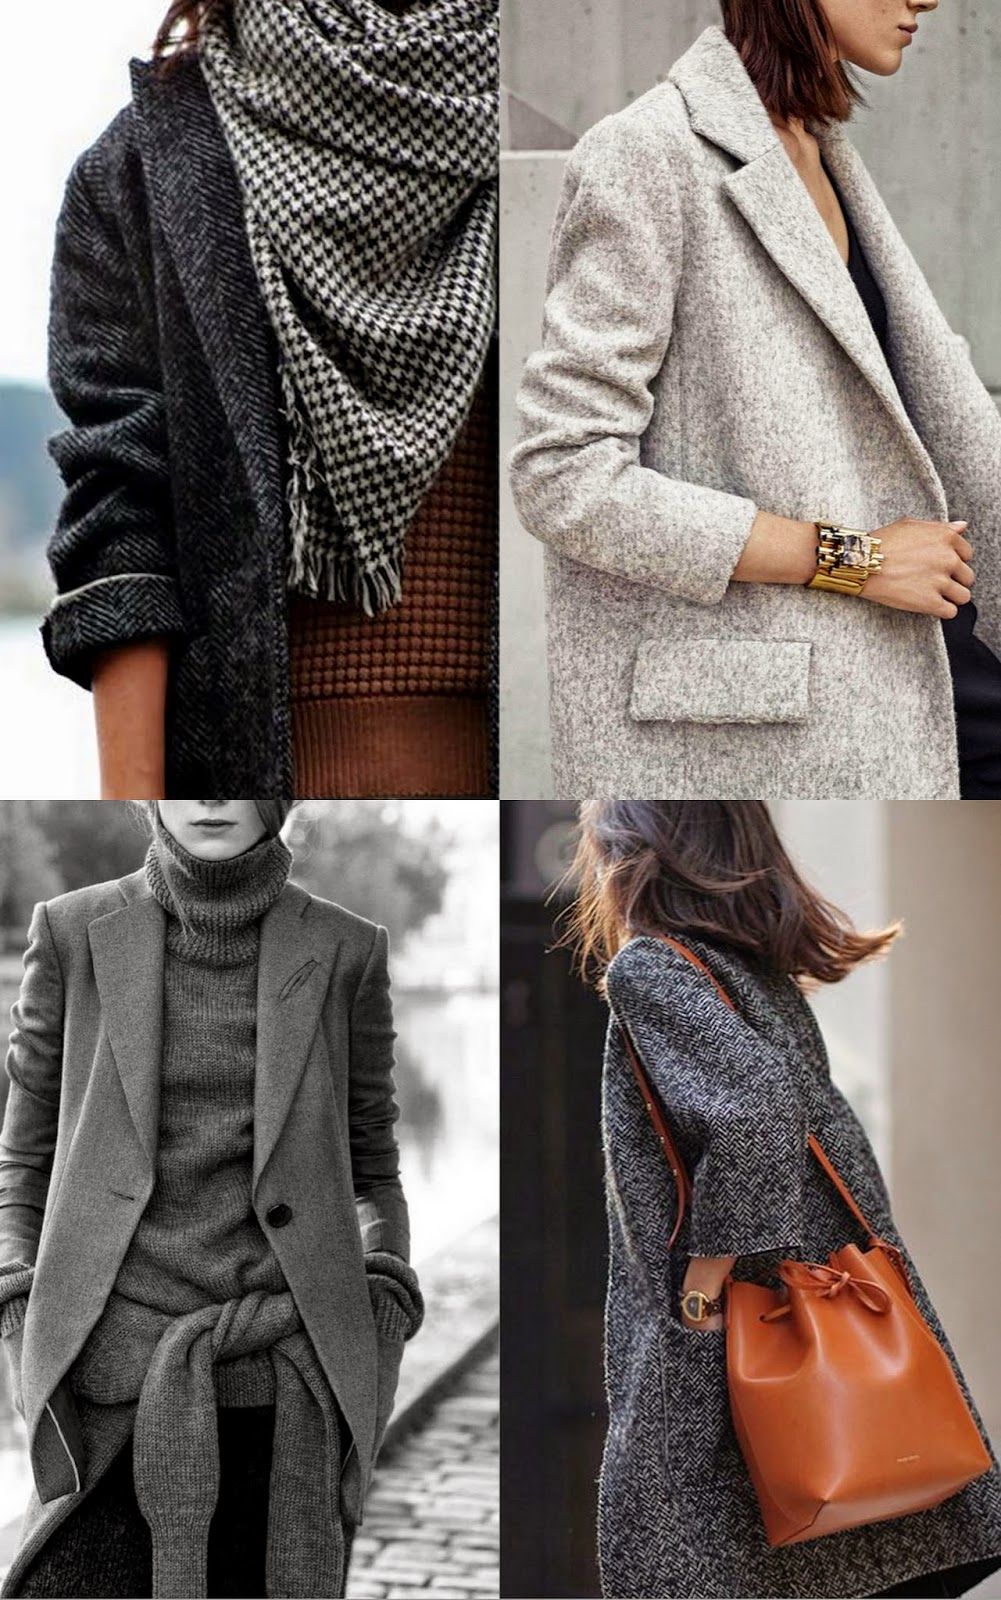 HOW TO DRESS FOR A NEW YORK CITY WINTER